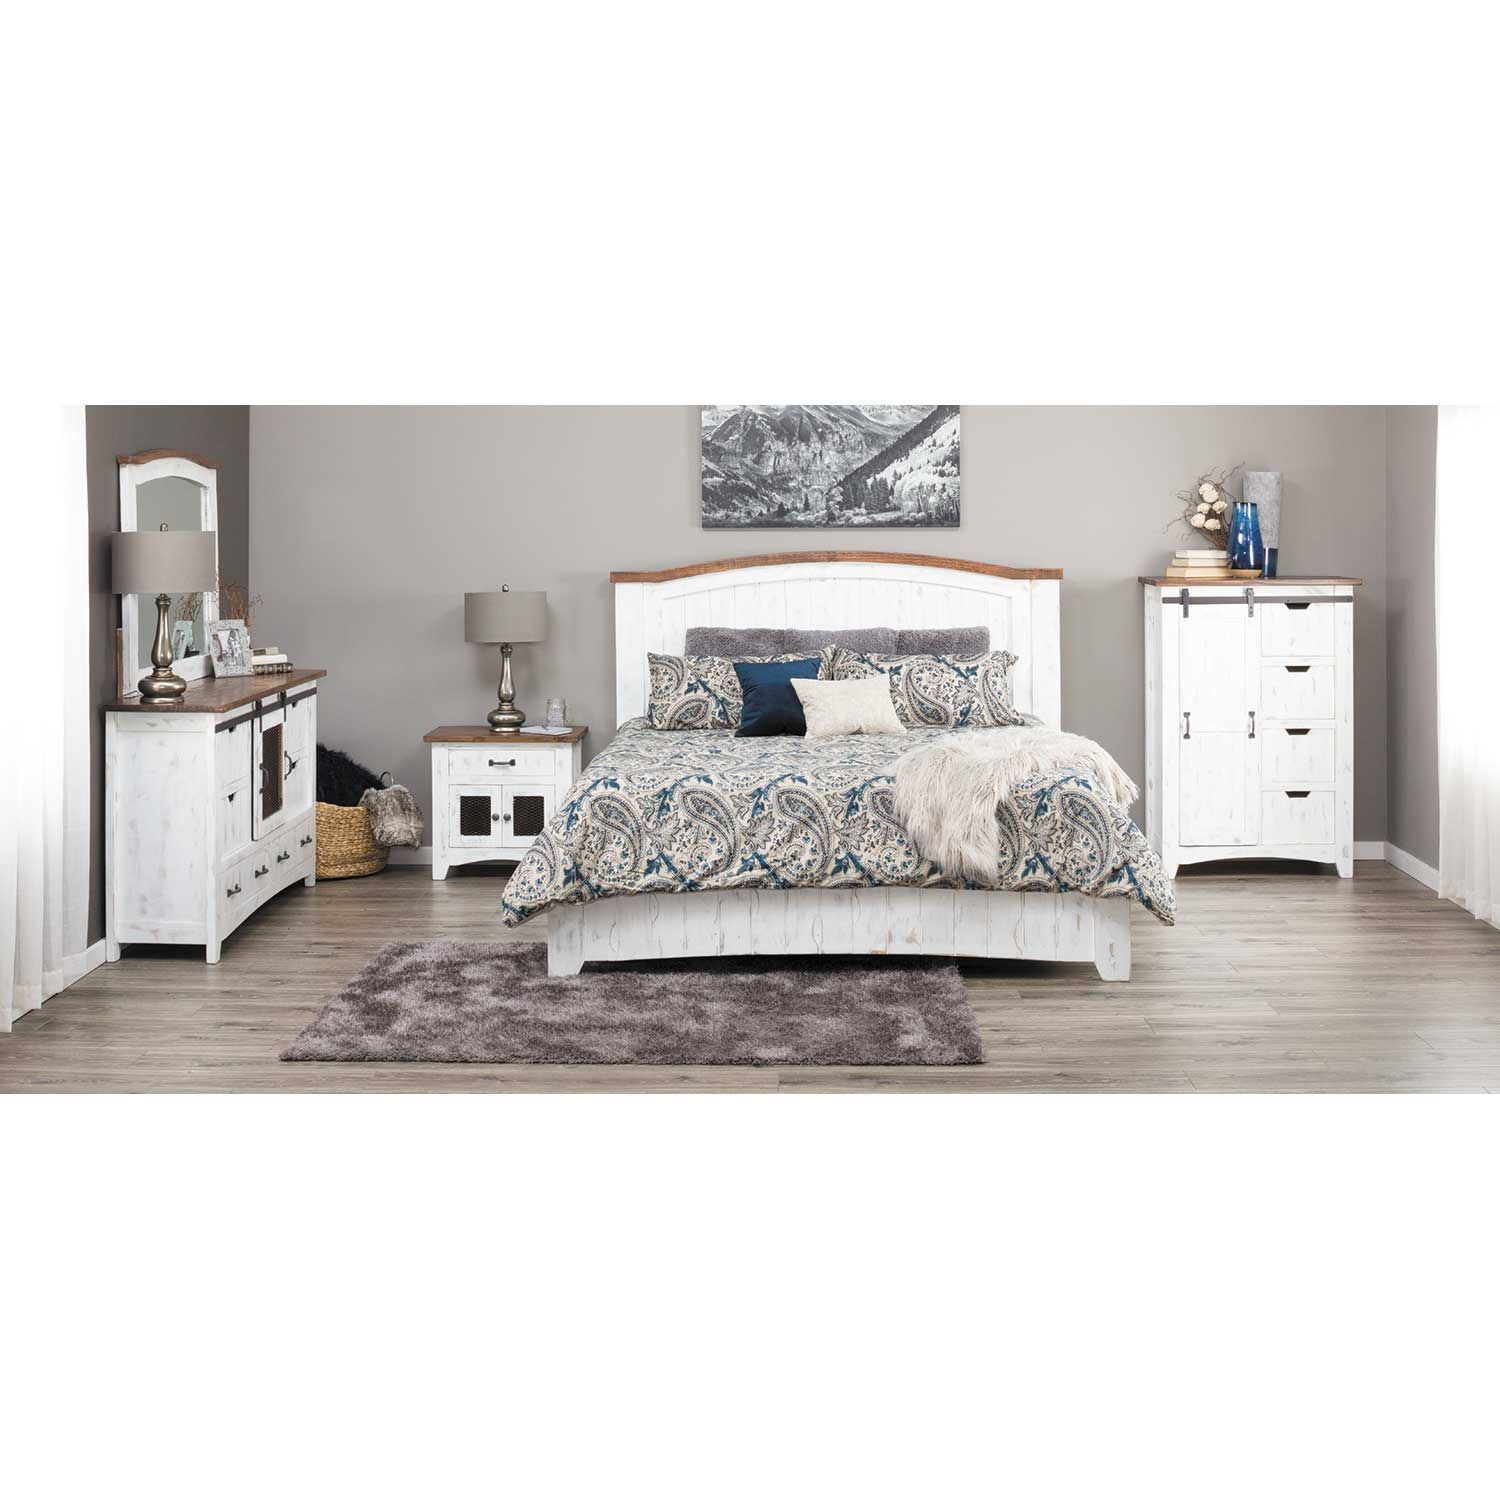 Pueblo White 5 Piece Bedroom Set